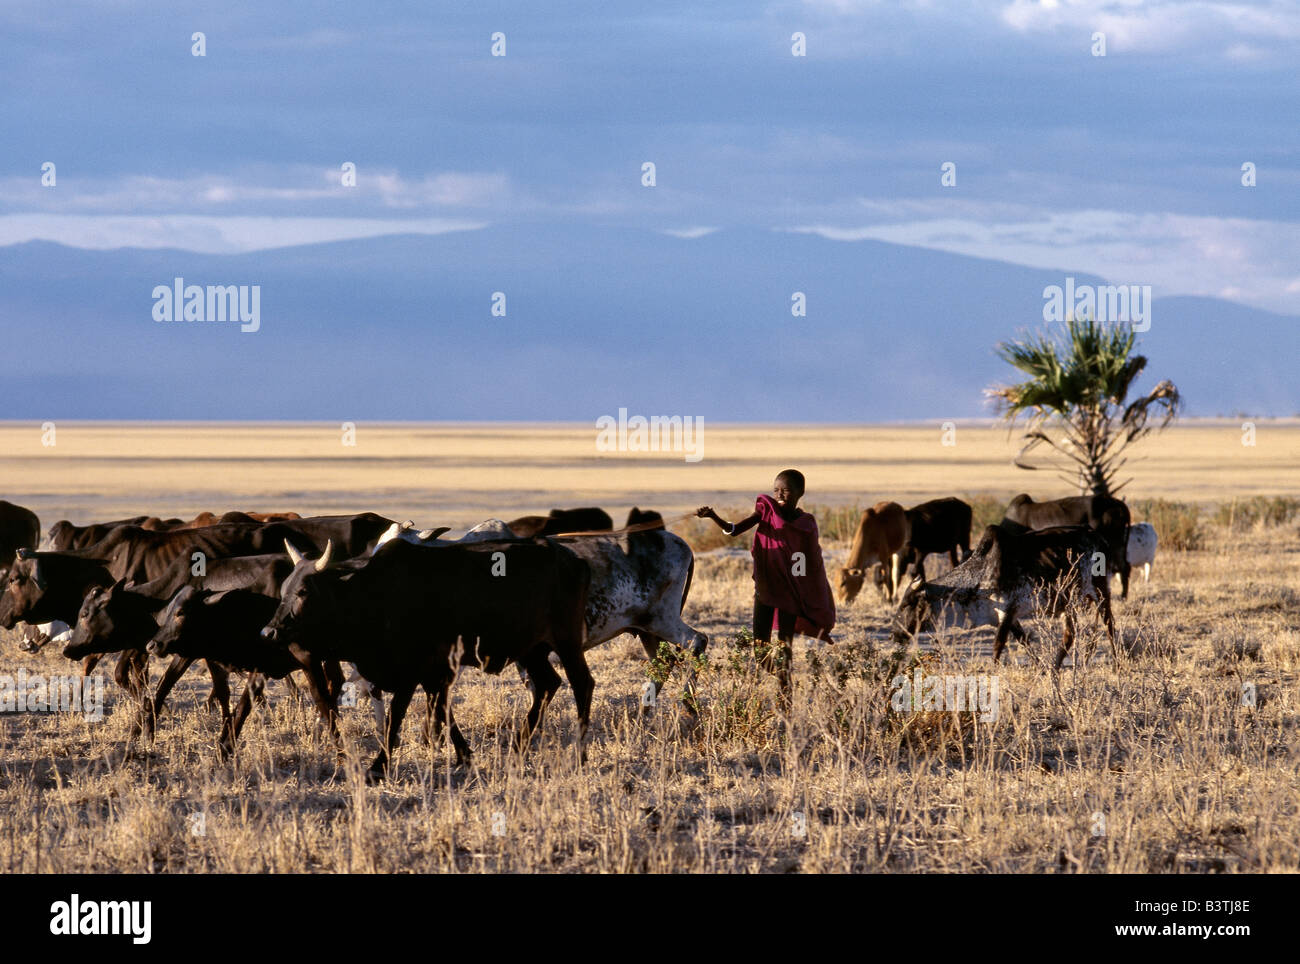 Tanzania, Northern Tanzania, Manyara. In the late afternoon, a Maasai boy drives his father's cattle home across - Stock Image